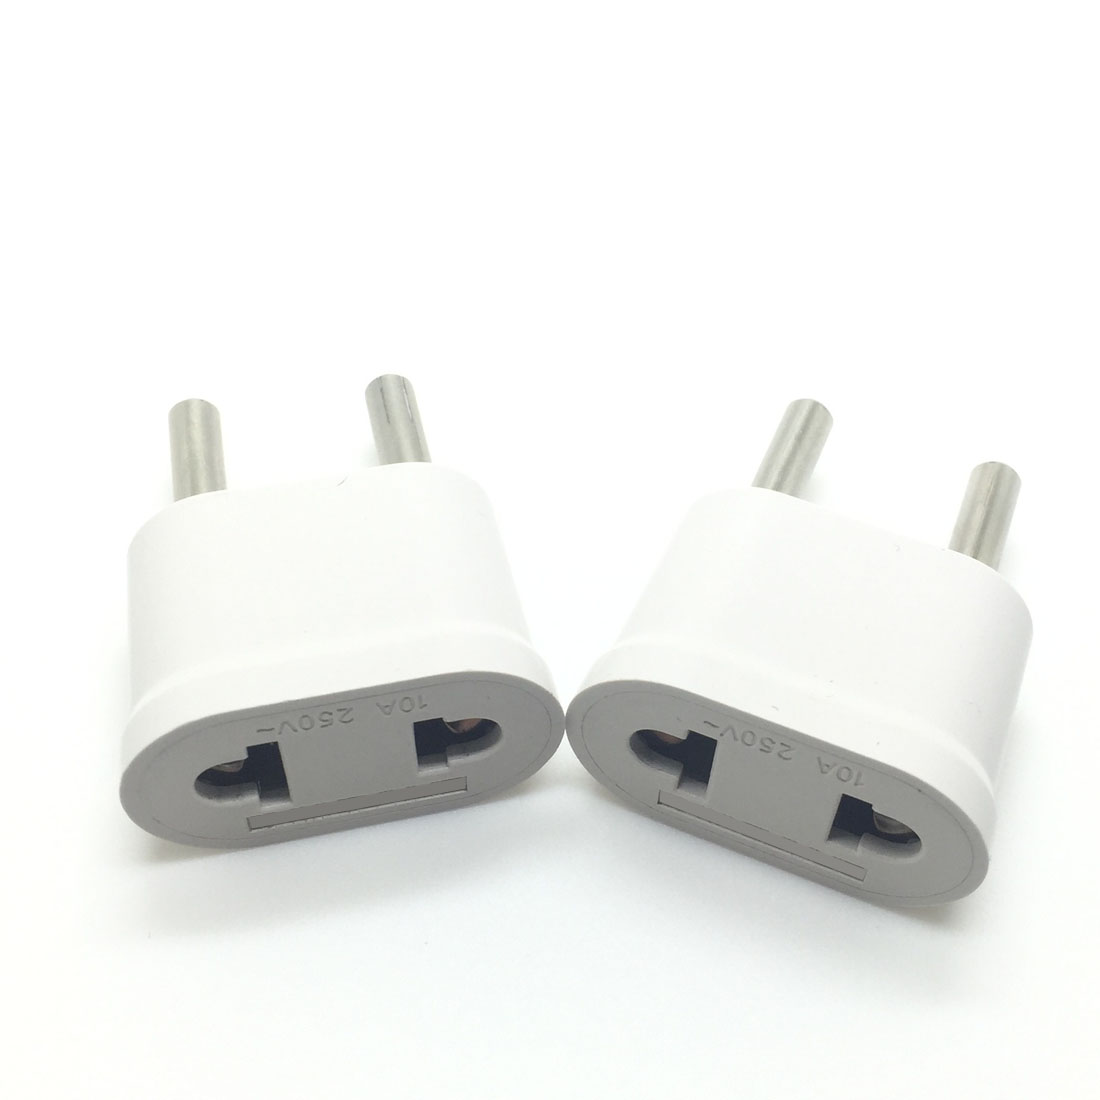 MAIF Good Sale 2pcs US USA to EU EURO Europe Travel Power Plug Adapter Charger Converter for USA converter White